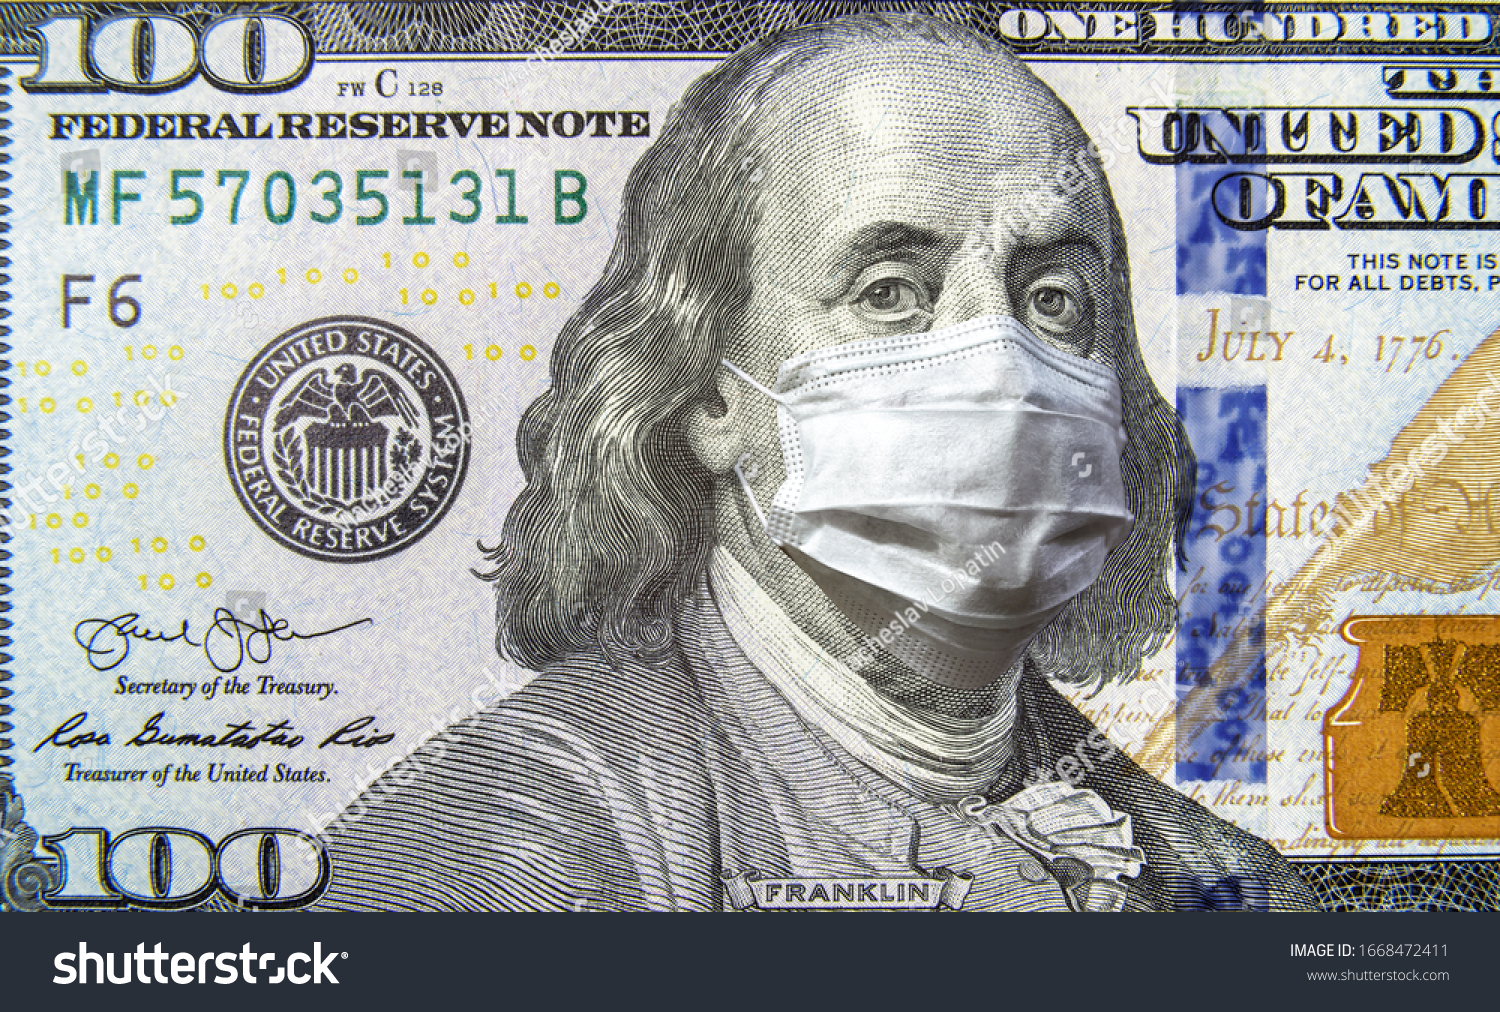 COVID-19 coronavirus in USA, 100 dollar money bill with face mask. Coronavirus affects global stock market. World economy hit by corona virus outbreak and pandemic fears. Crisis and finance concept. #1668472411